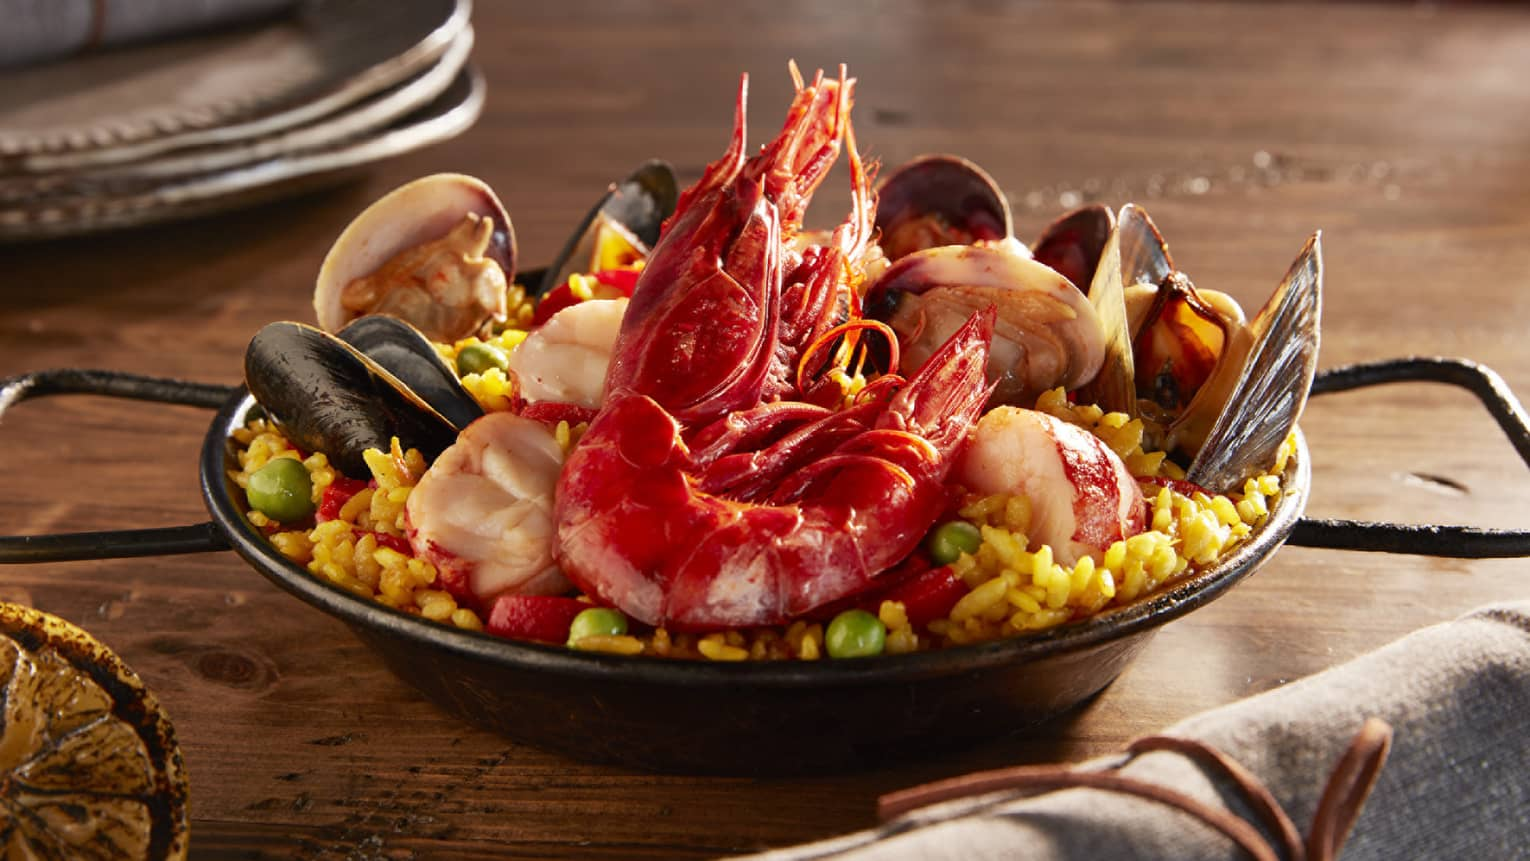 A dish consisting of corn, clams and shrimp sits on a wooden table